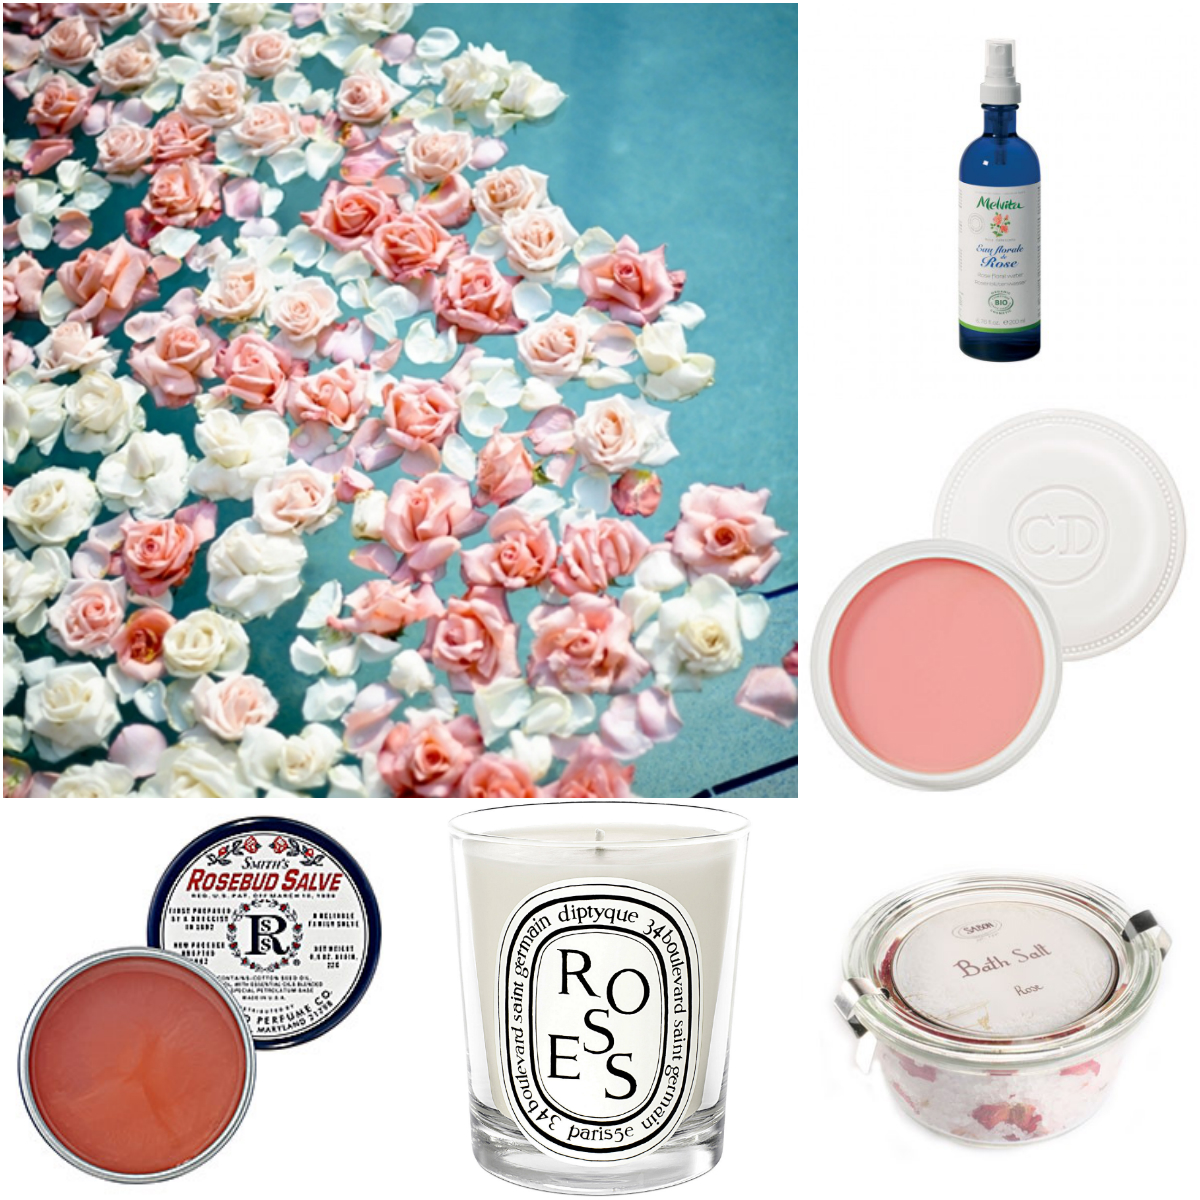 The Best Rose-scented Products To Buy For Spring